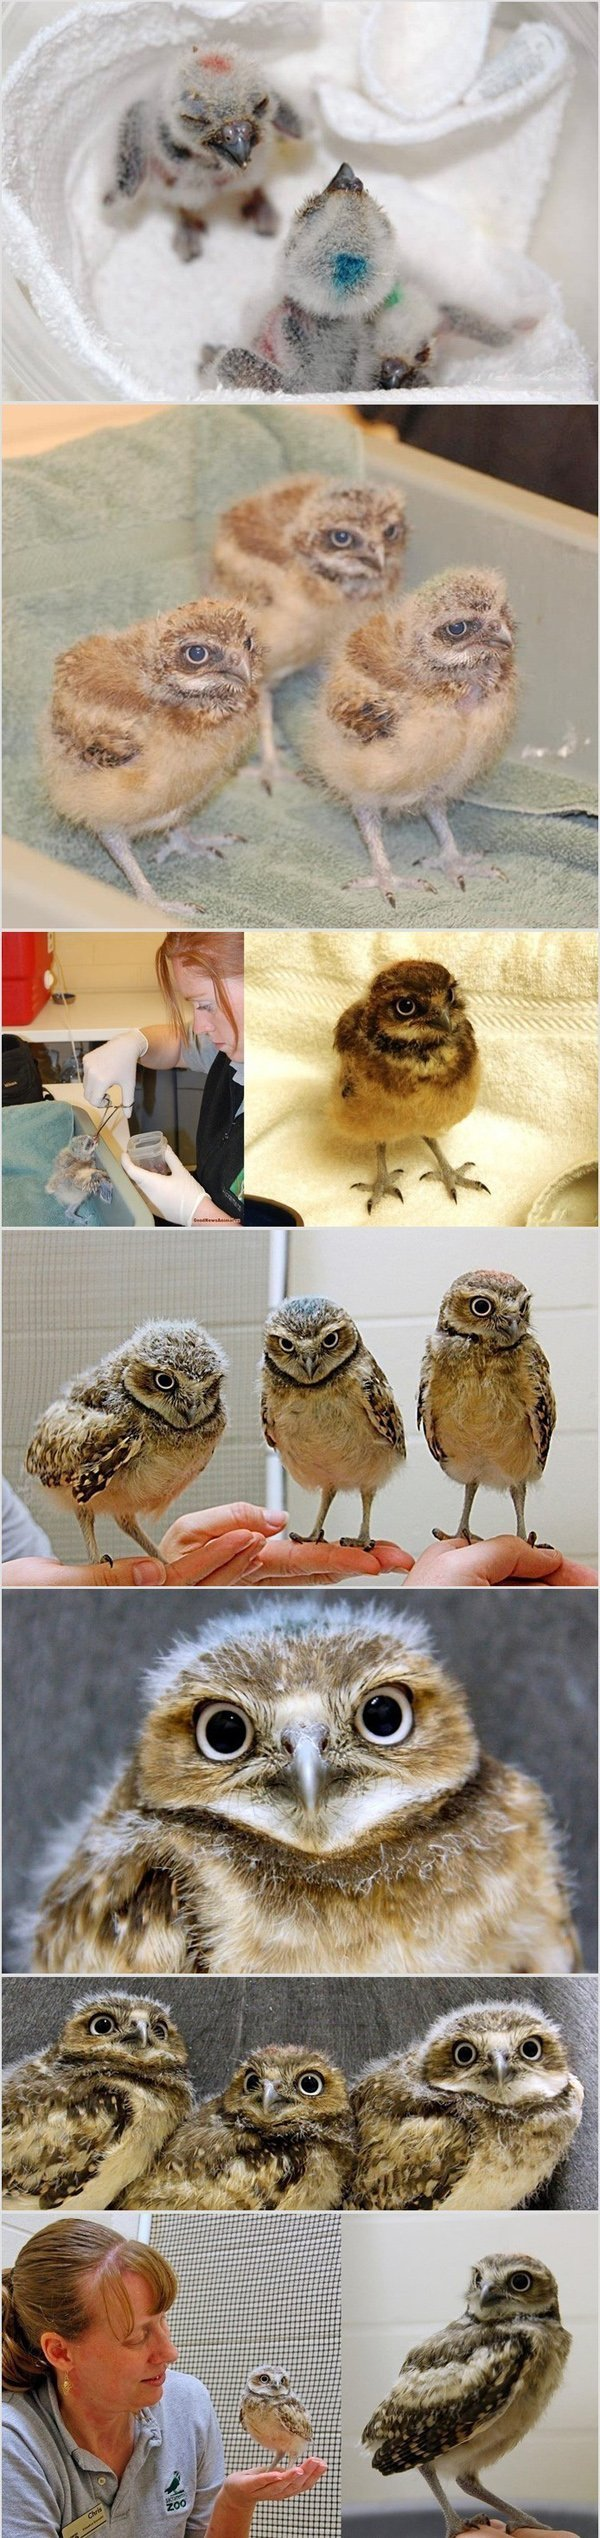 adopted owl babies. .. roll random number